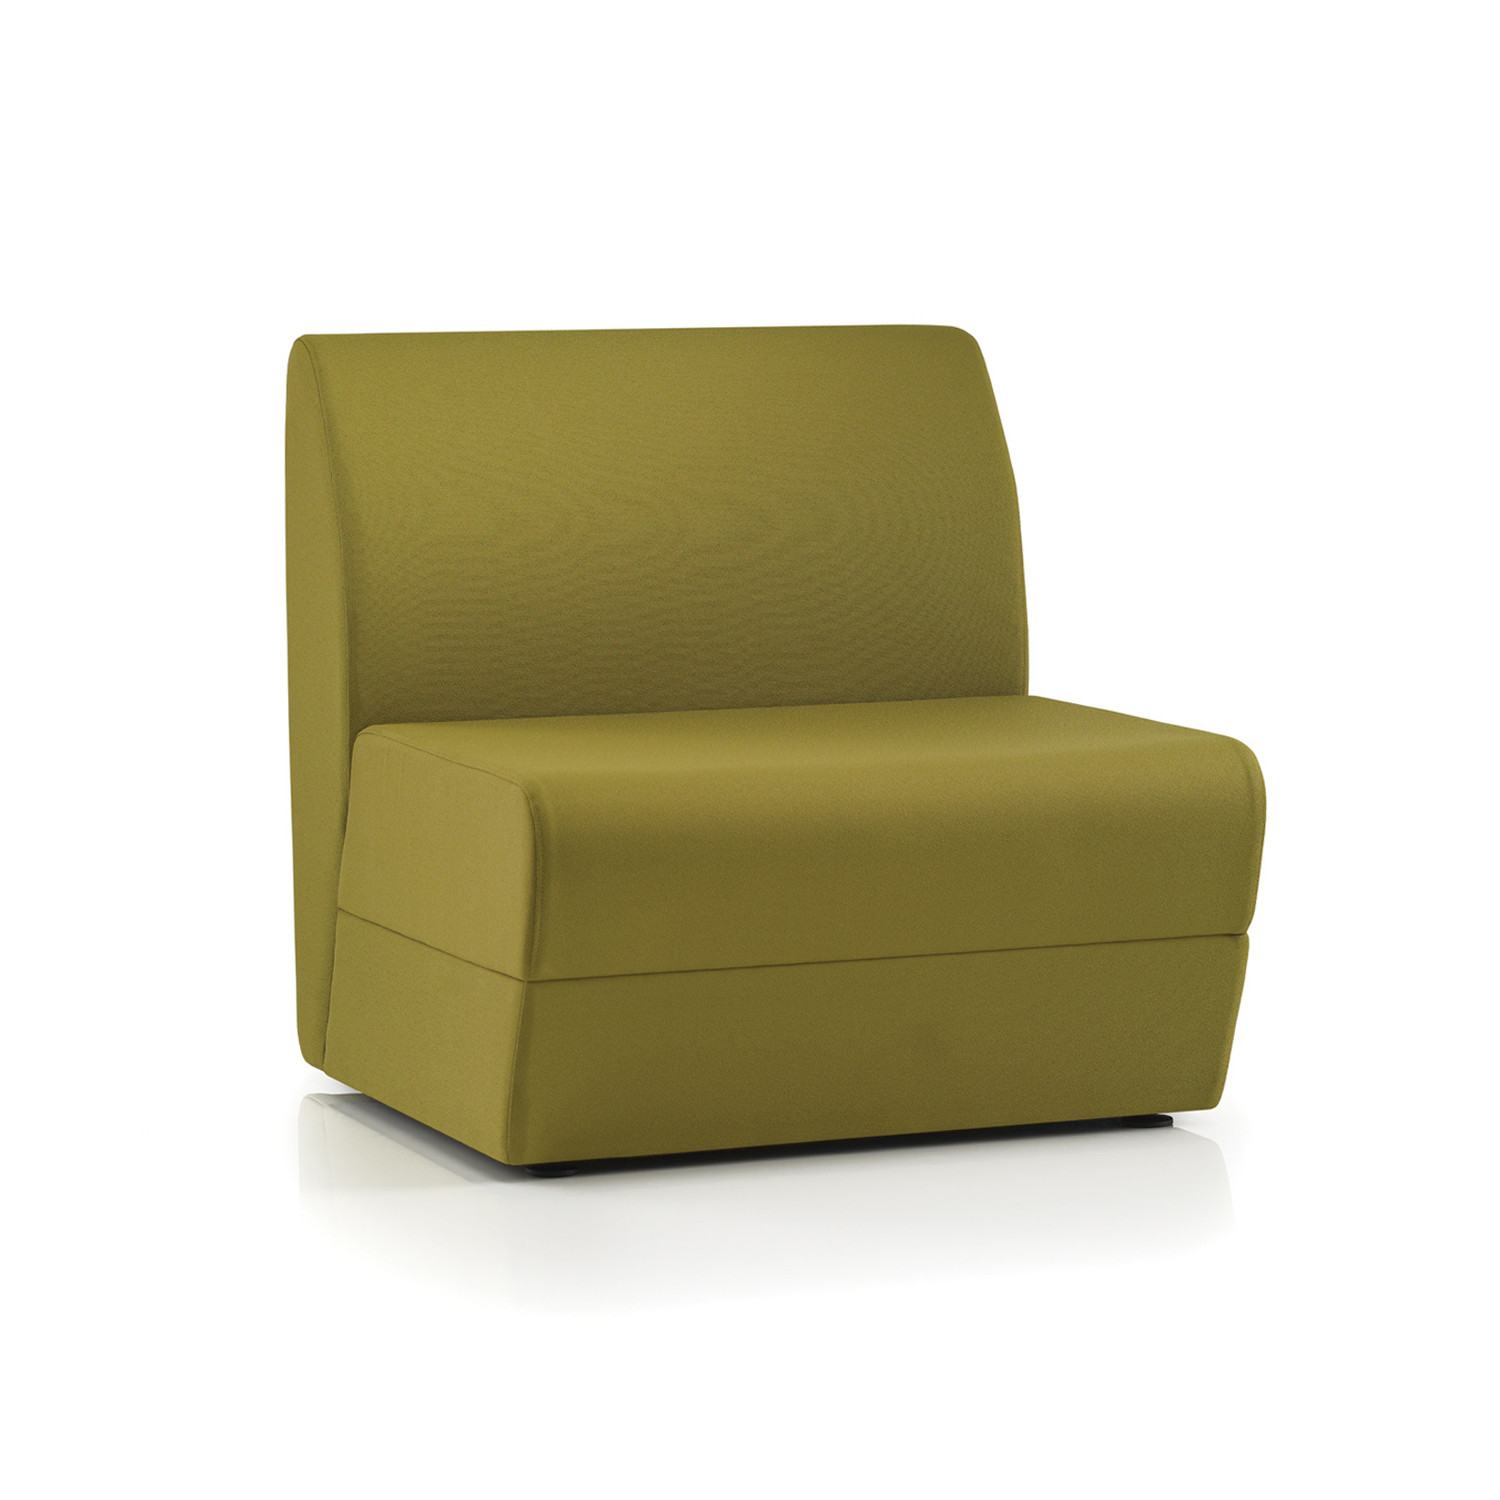 Series 9500 Armchair